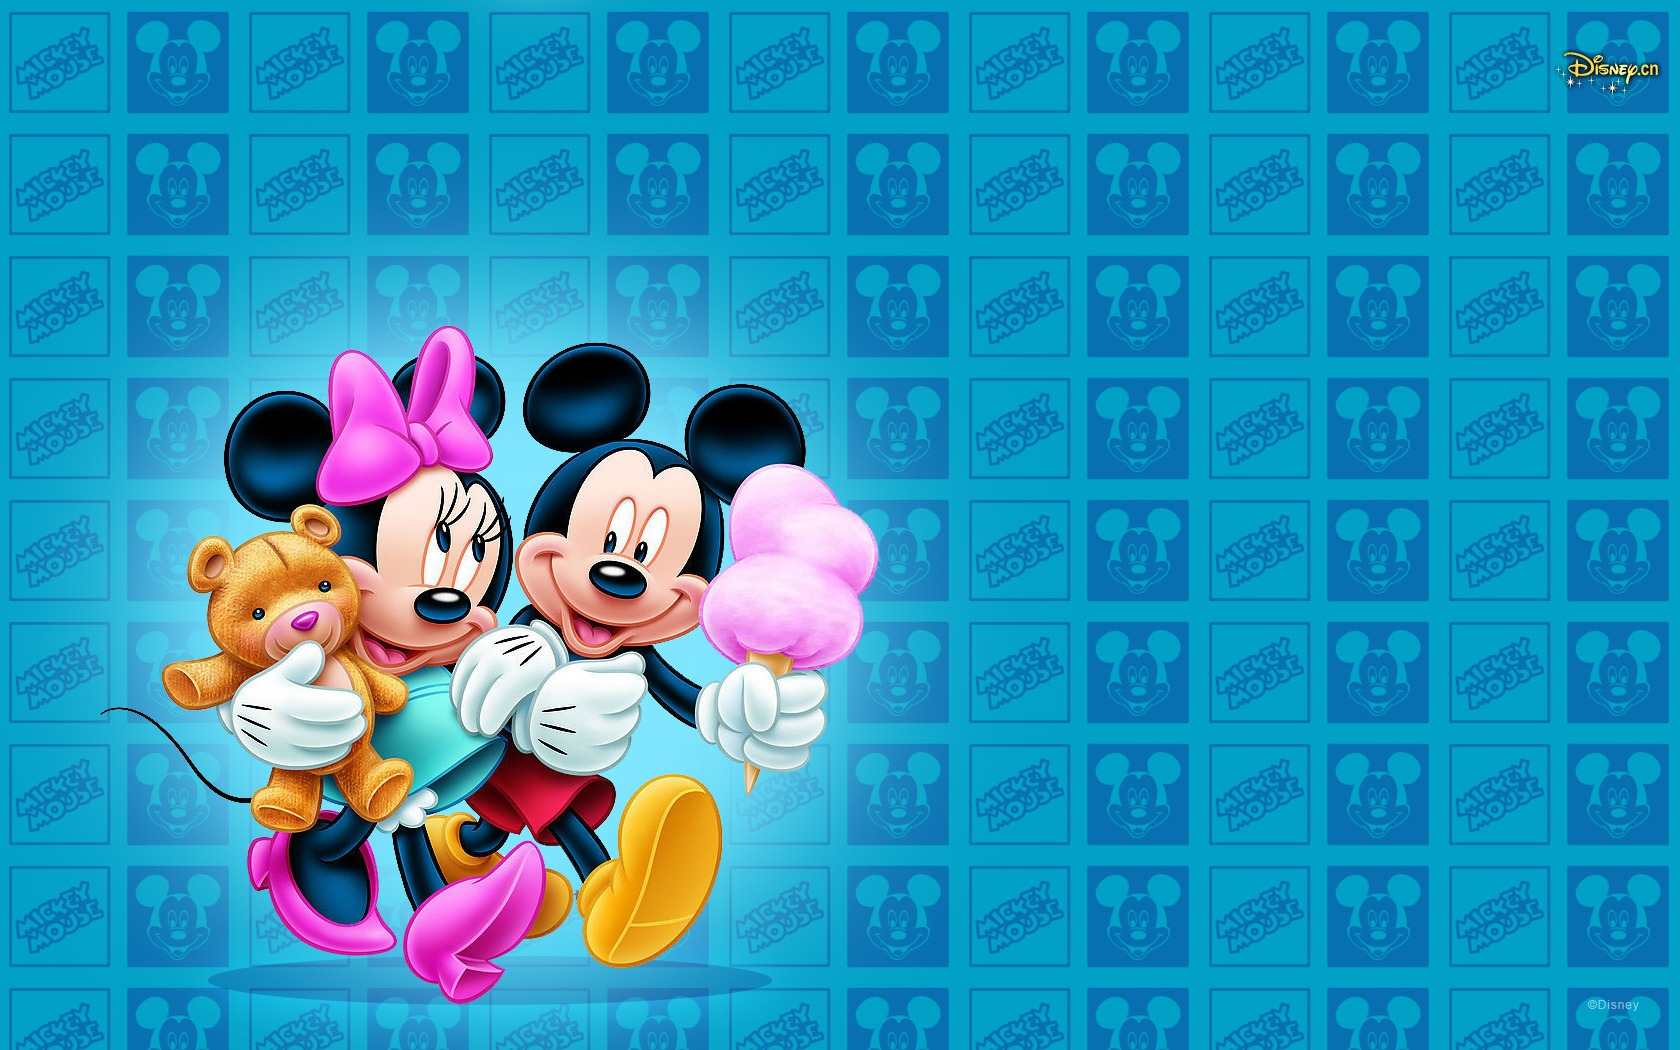 Free Download New Mickey Background Mickey Mouse Wallpapers 1680x1050 For Your Desktop Mobile Tablet Explore 48 Cute Mickey Mouse Iphone Wallpaper Mickey Mouse Wallpaper Desktop Mickey Mouse Images Wallpaper